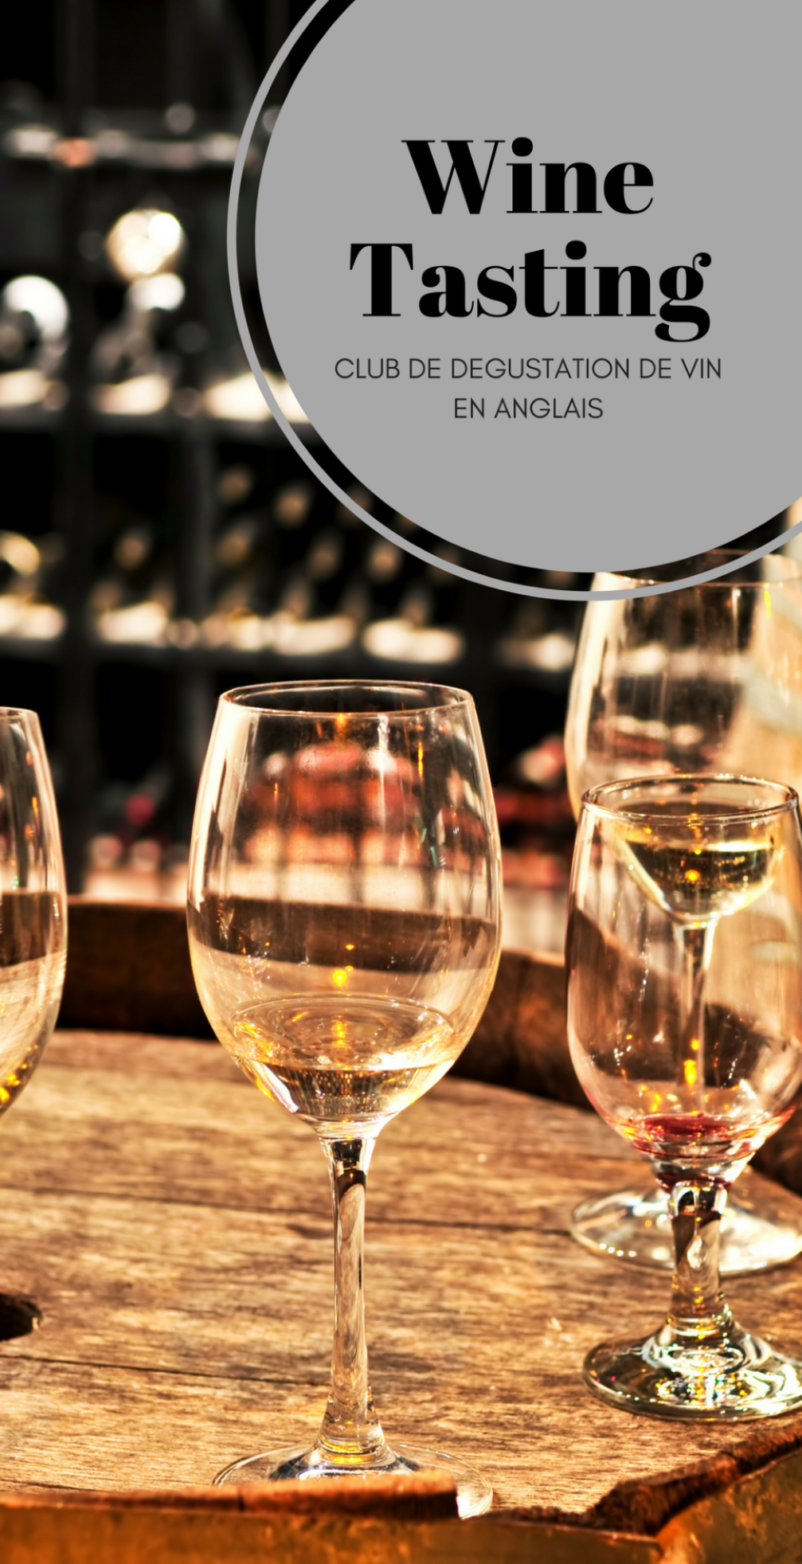 Wine Tasting Club In English /► June 5 At 7pm